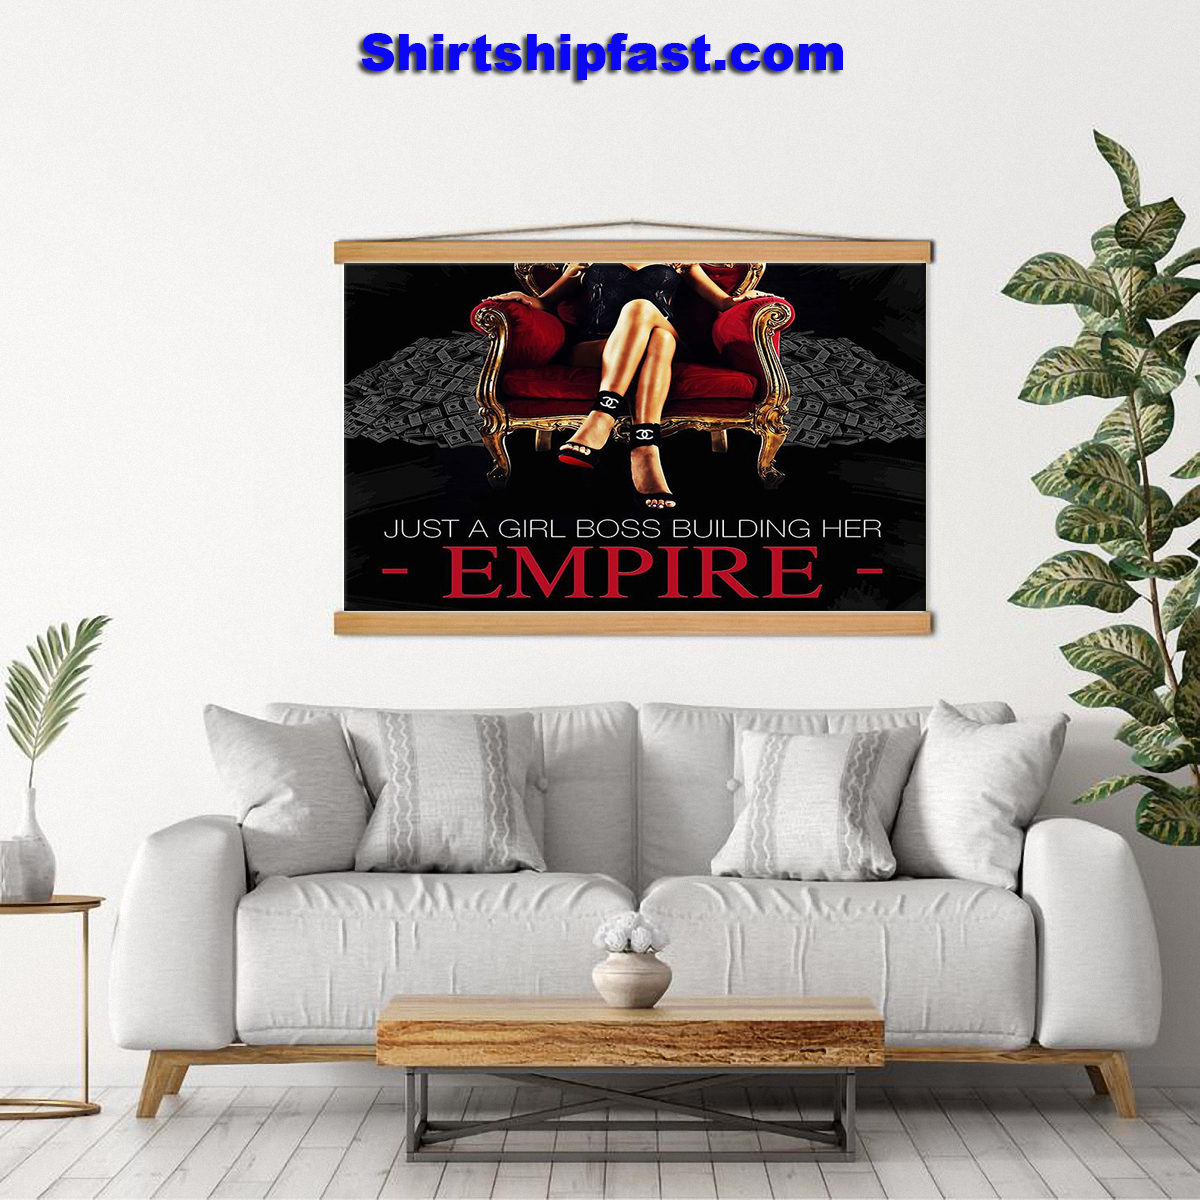 Just a girl boss building her empire canvas prints - Picture 2